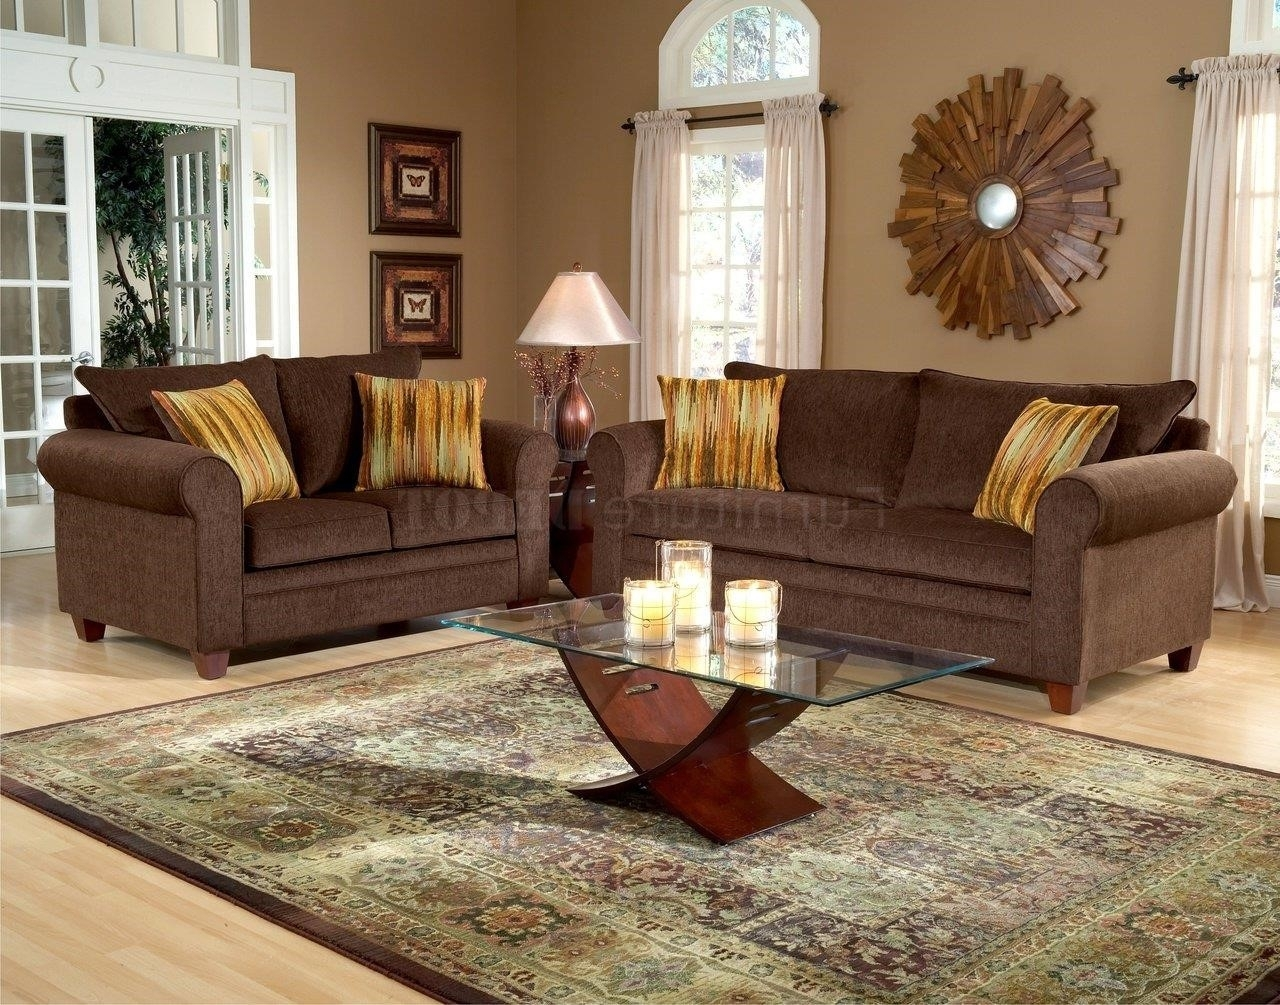 Dark Brown Couch Decor Randolph Indoor And Outdoor Design